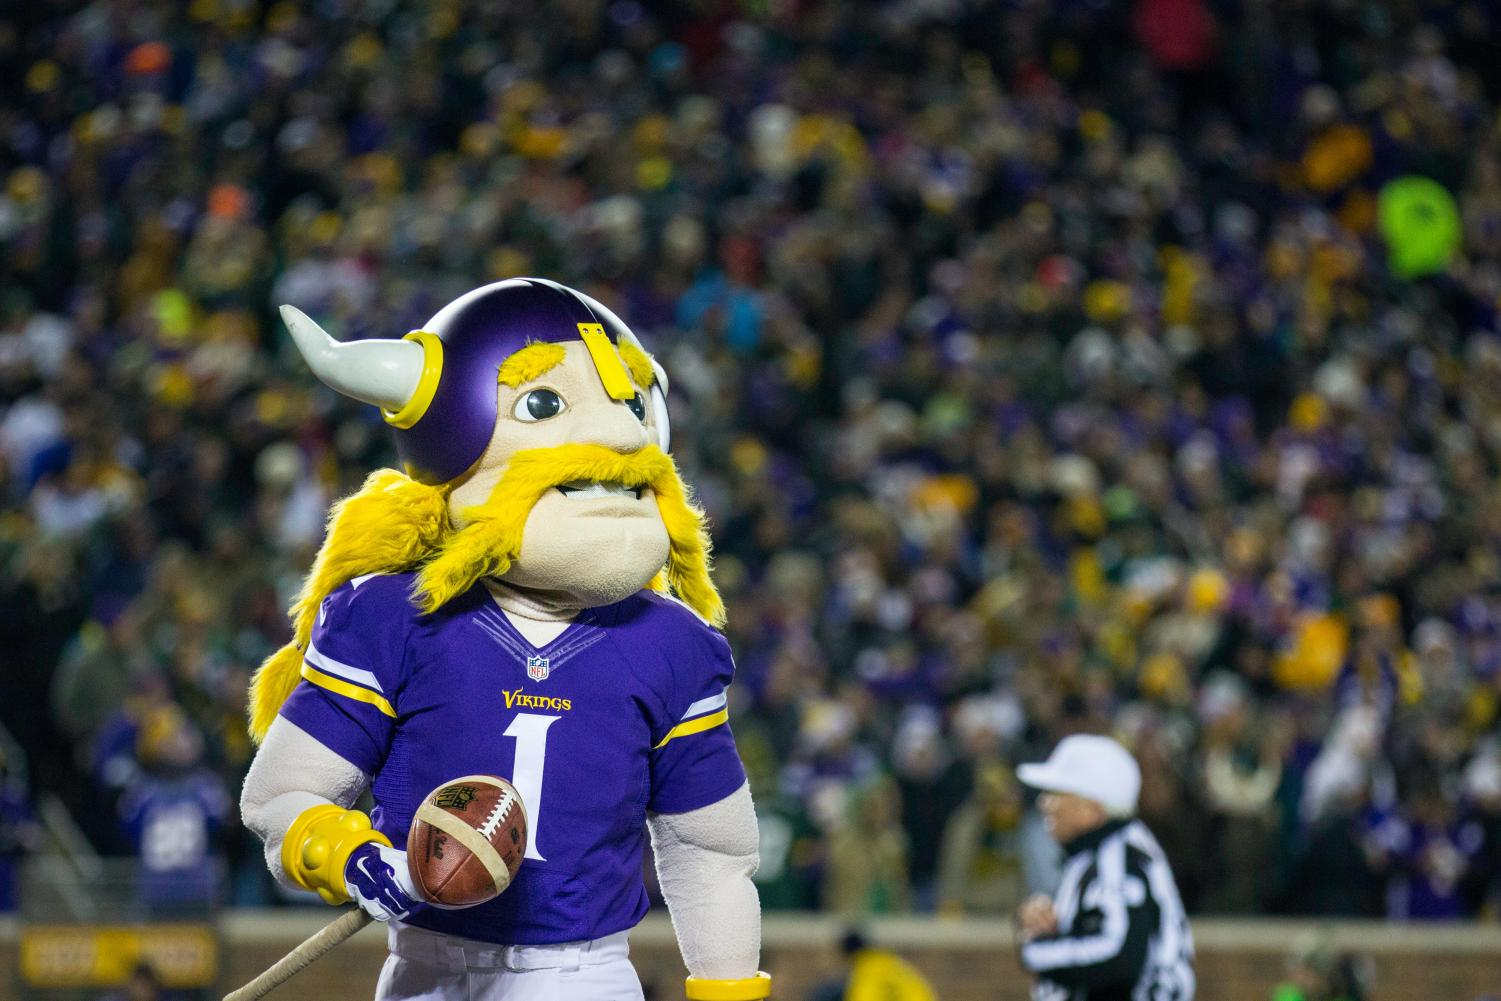 Vikings mascot in focus